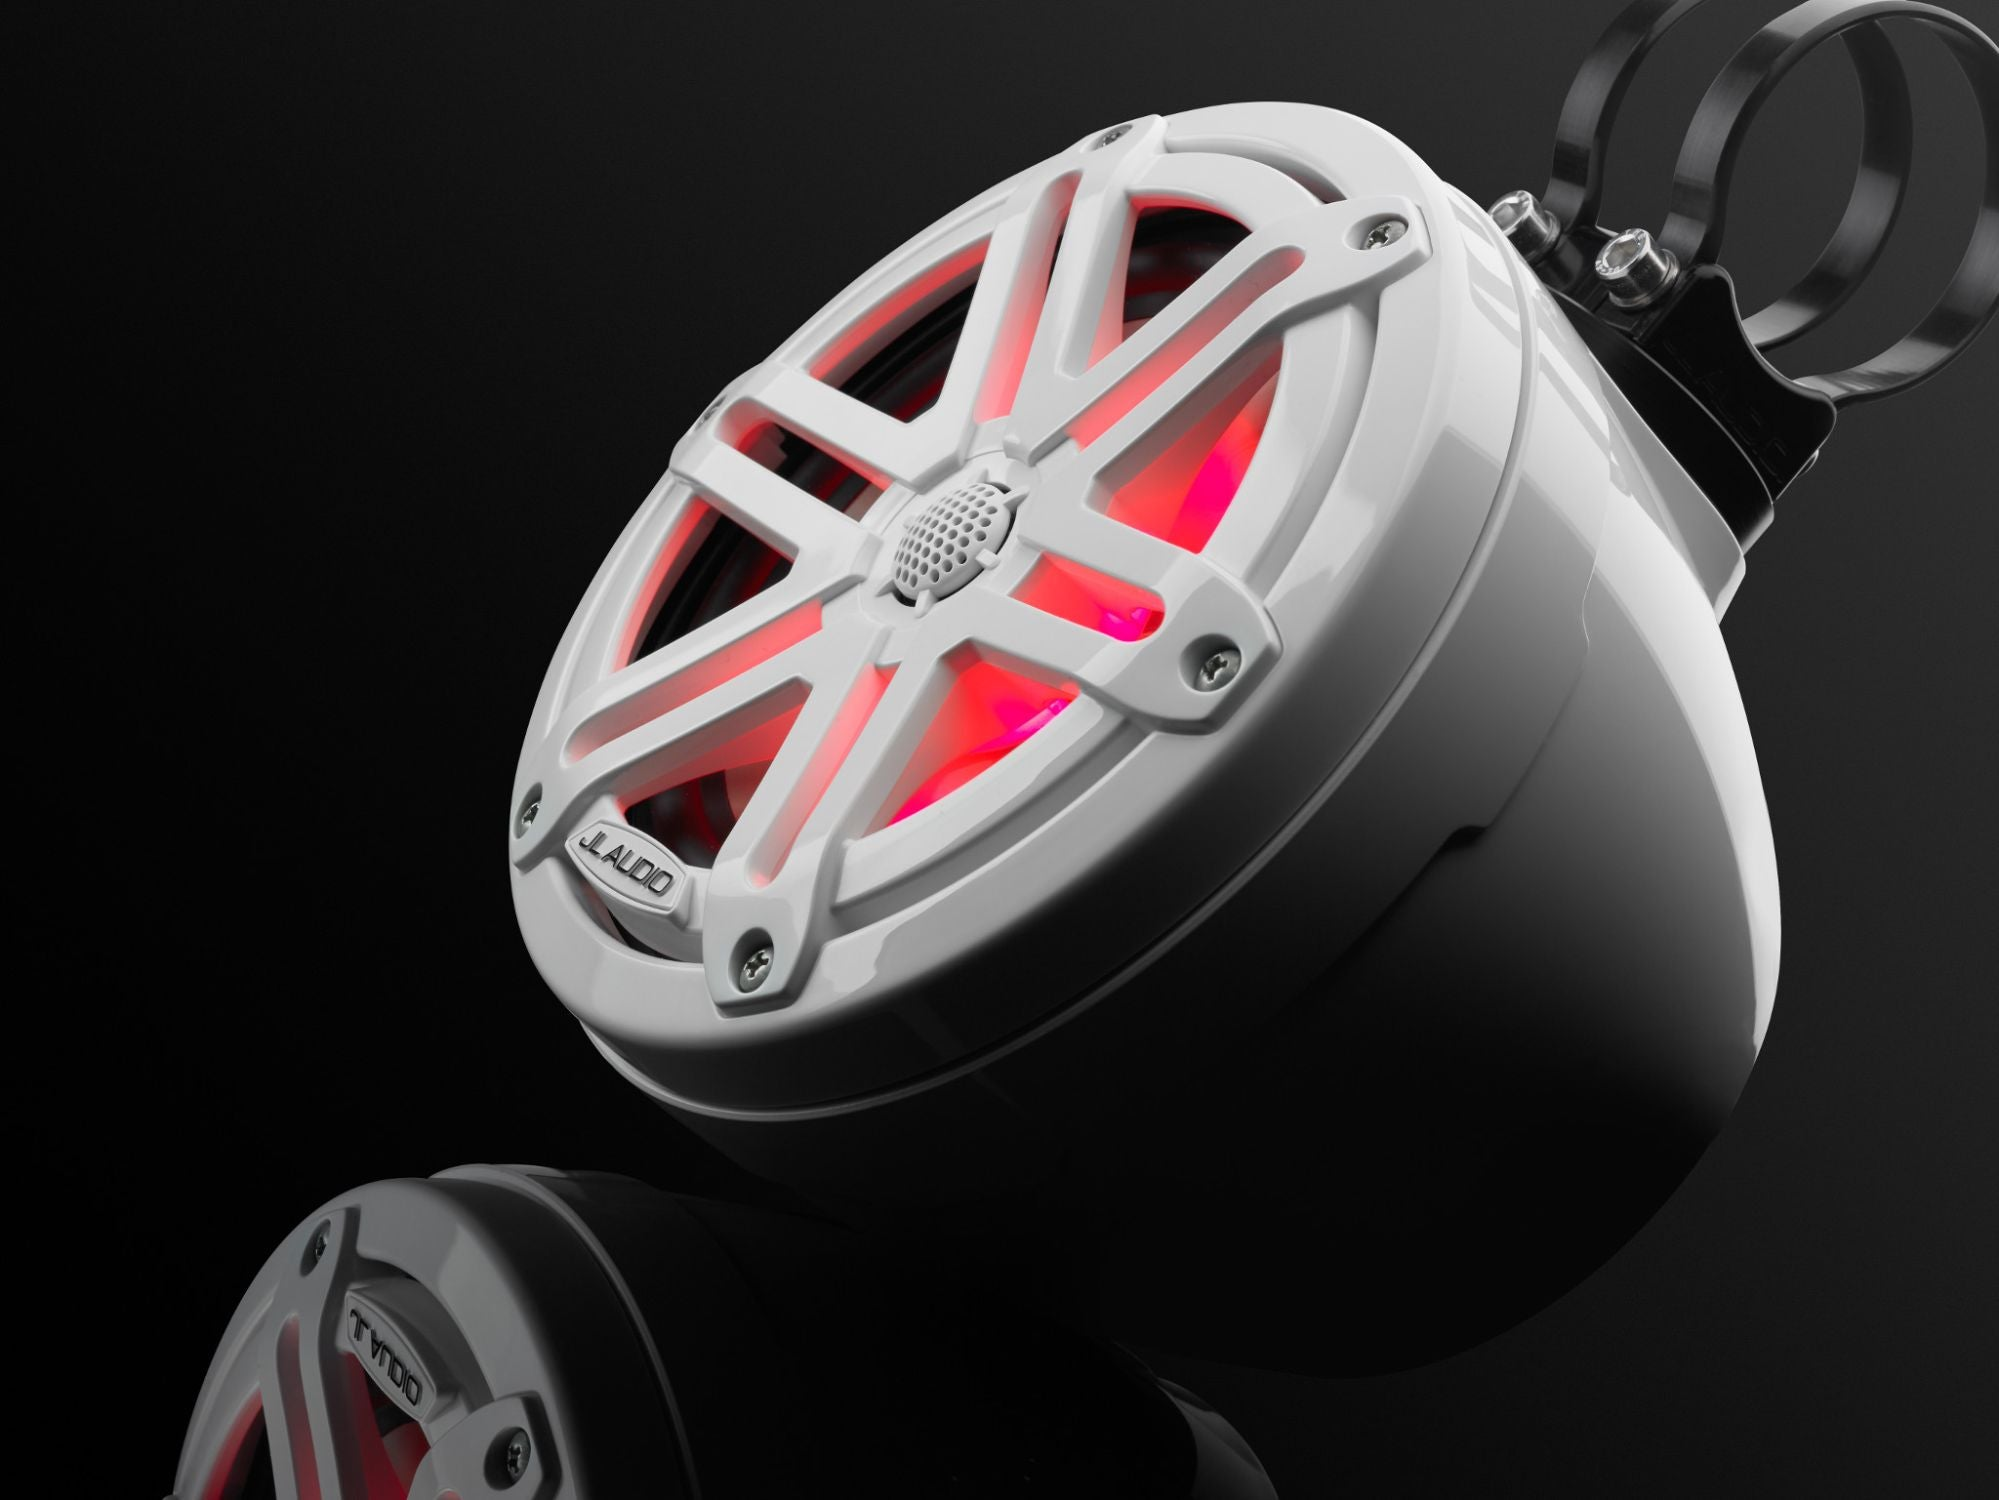 Detail of M3-650VEX-Gw-S-Gw-i Enclosed Speaker Lit with Red